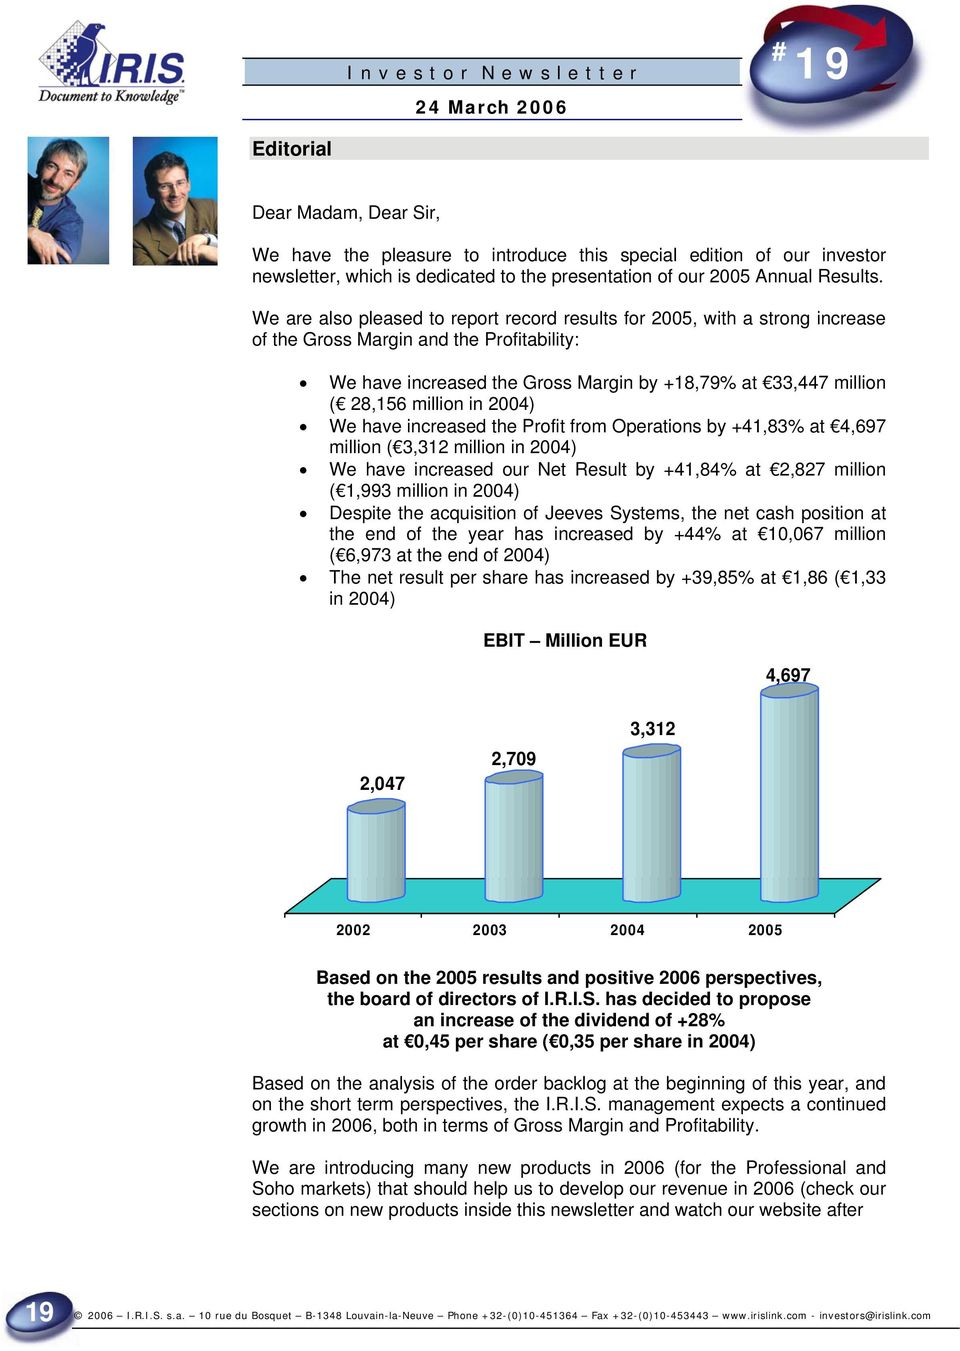 million in 2004) We have increased the Profit from Operations by +41,83% at 4,697 million ( 3,312 million in 2004) We have increased our Net Result by +41,84% at 2,827 million ( 1,993 million in